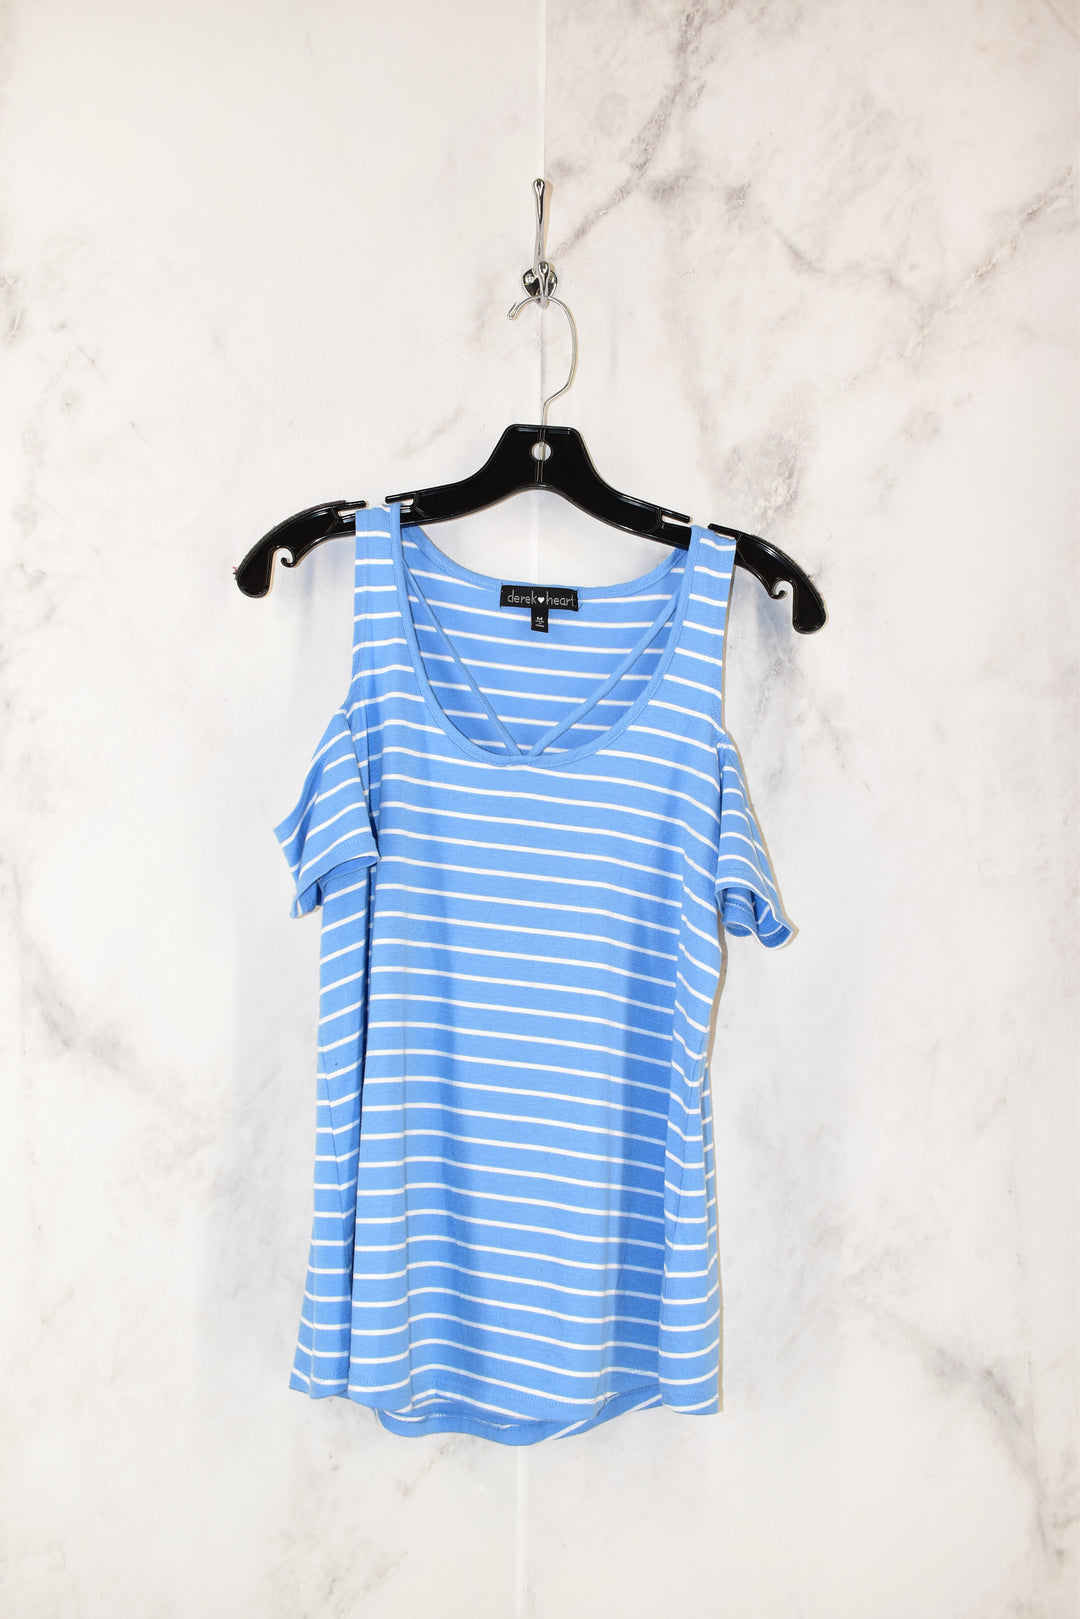 Primary Photo - BRAND: DEREK HEART <BR>STYLE: TOP SHORT SLEEVE <BR>COLOR: BLUE <BR>SIZE: M <BR>SKU: 186-186213-2986